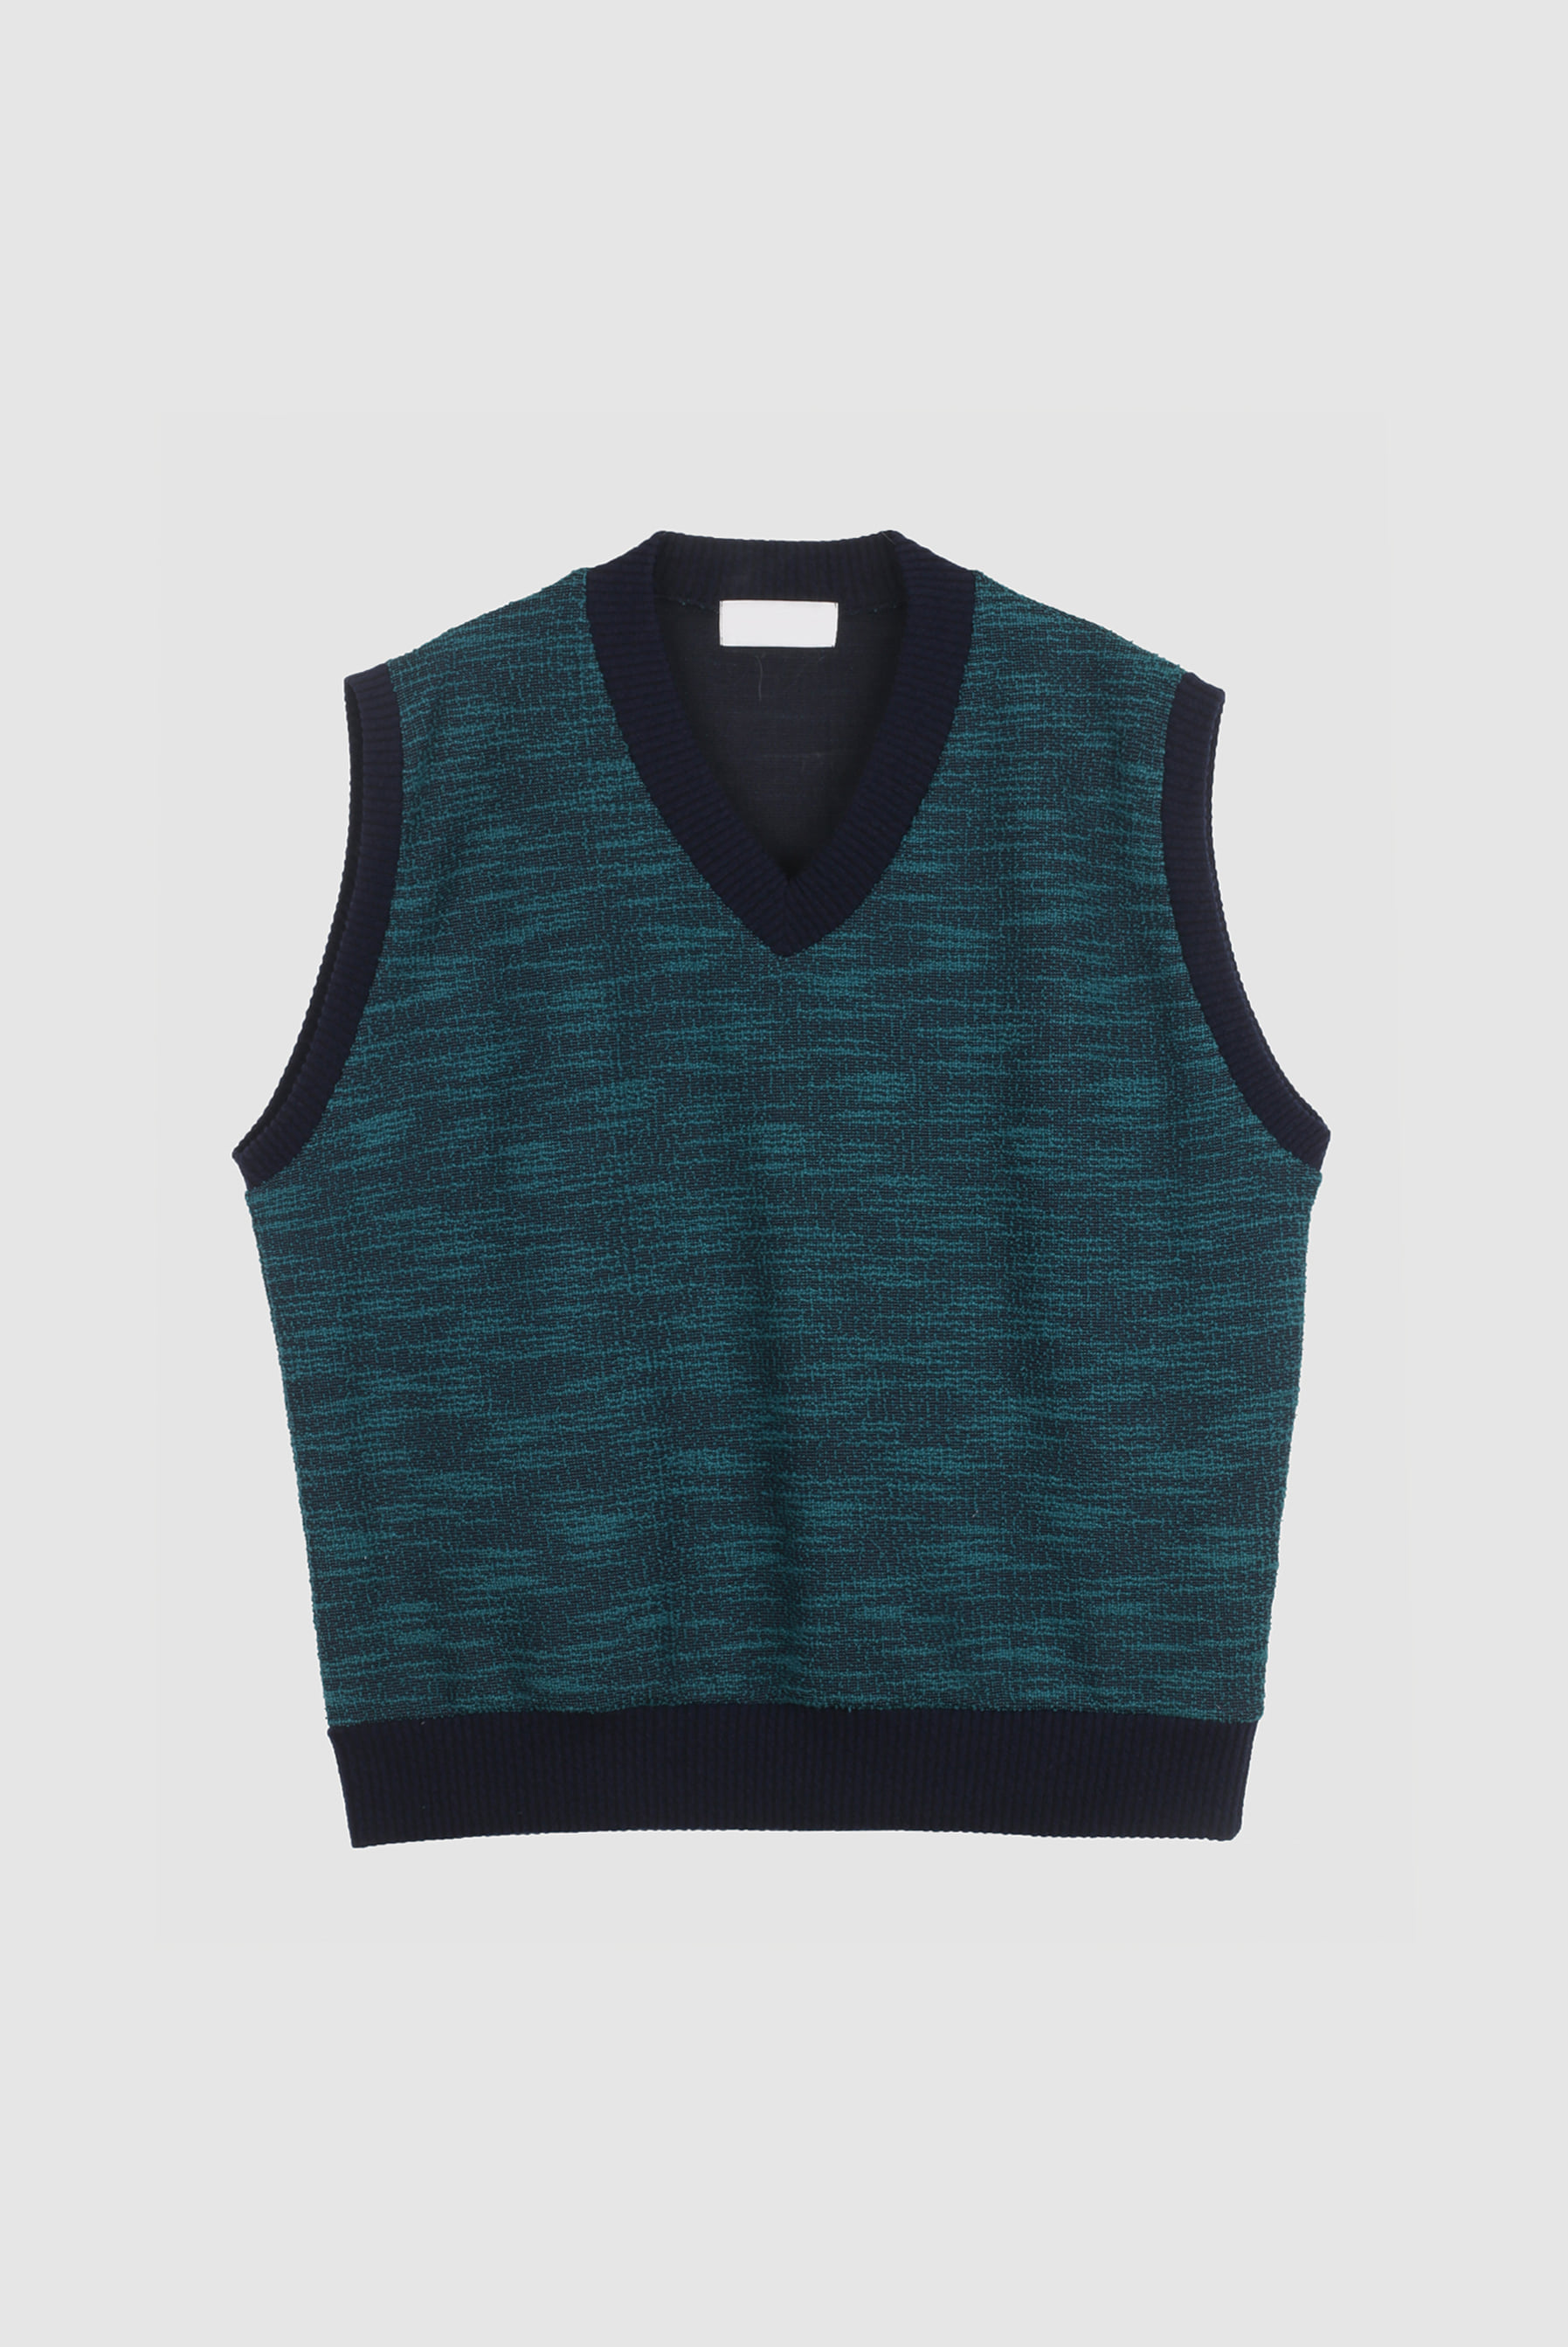 Lin_Tone TweedV_Neck_Vest